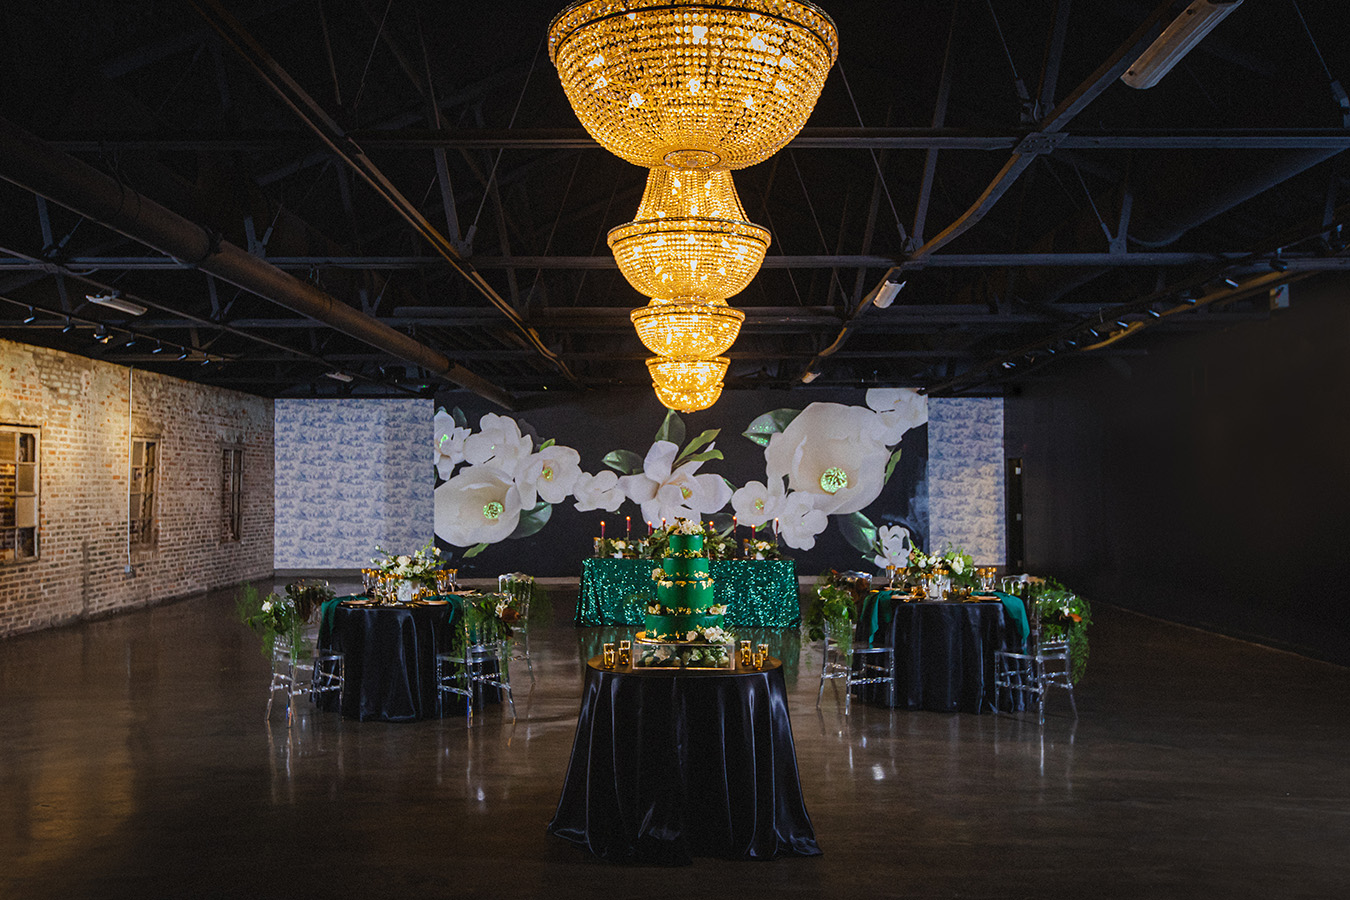 Styled Wedding Reception At The Parlor At The Pontchartrain Hotel | Photo By Brian Jarreau Photography